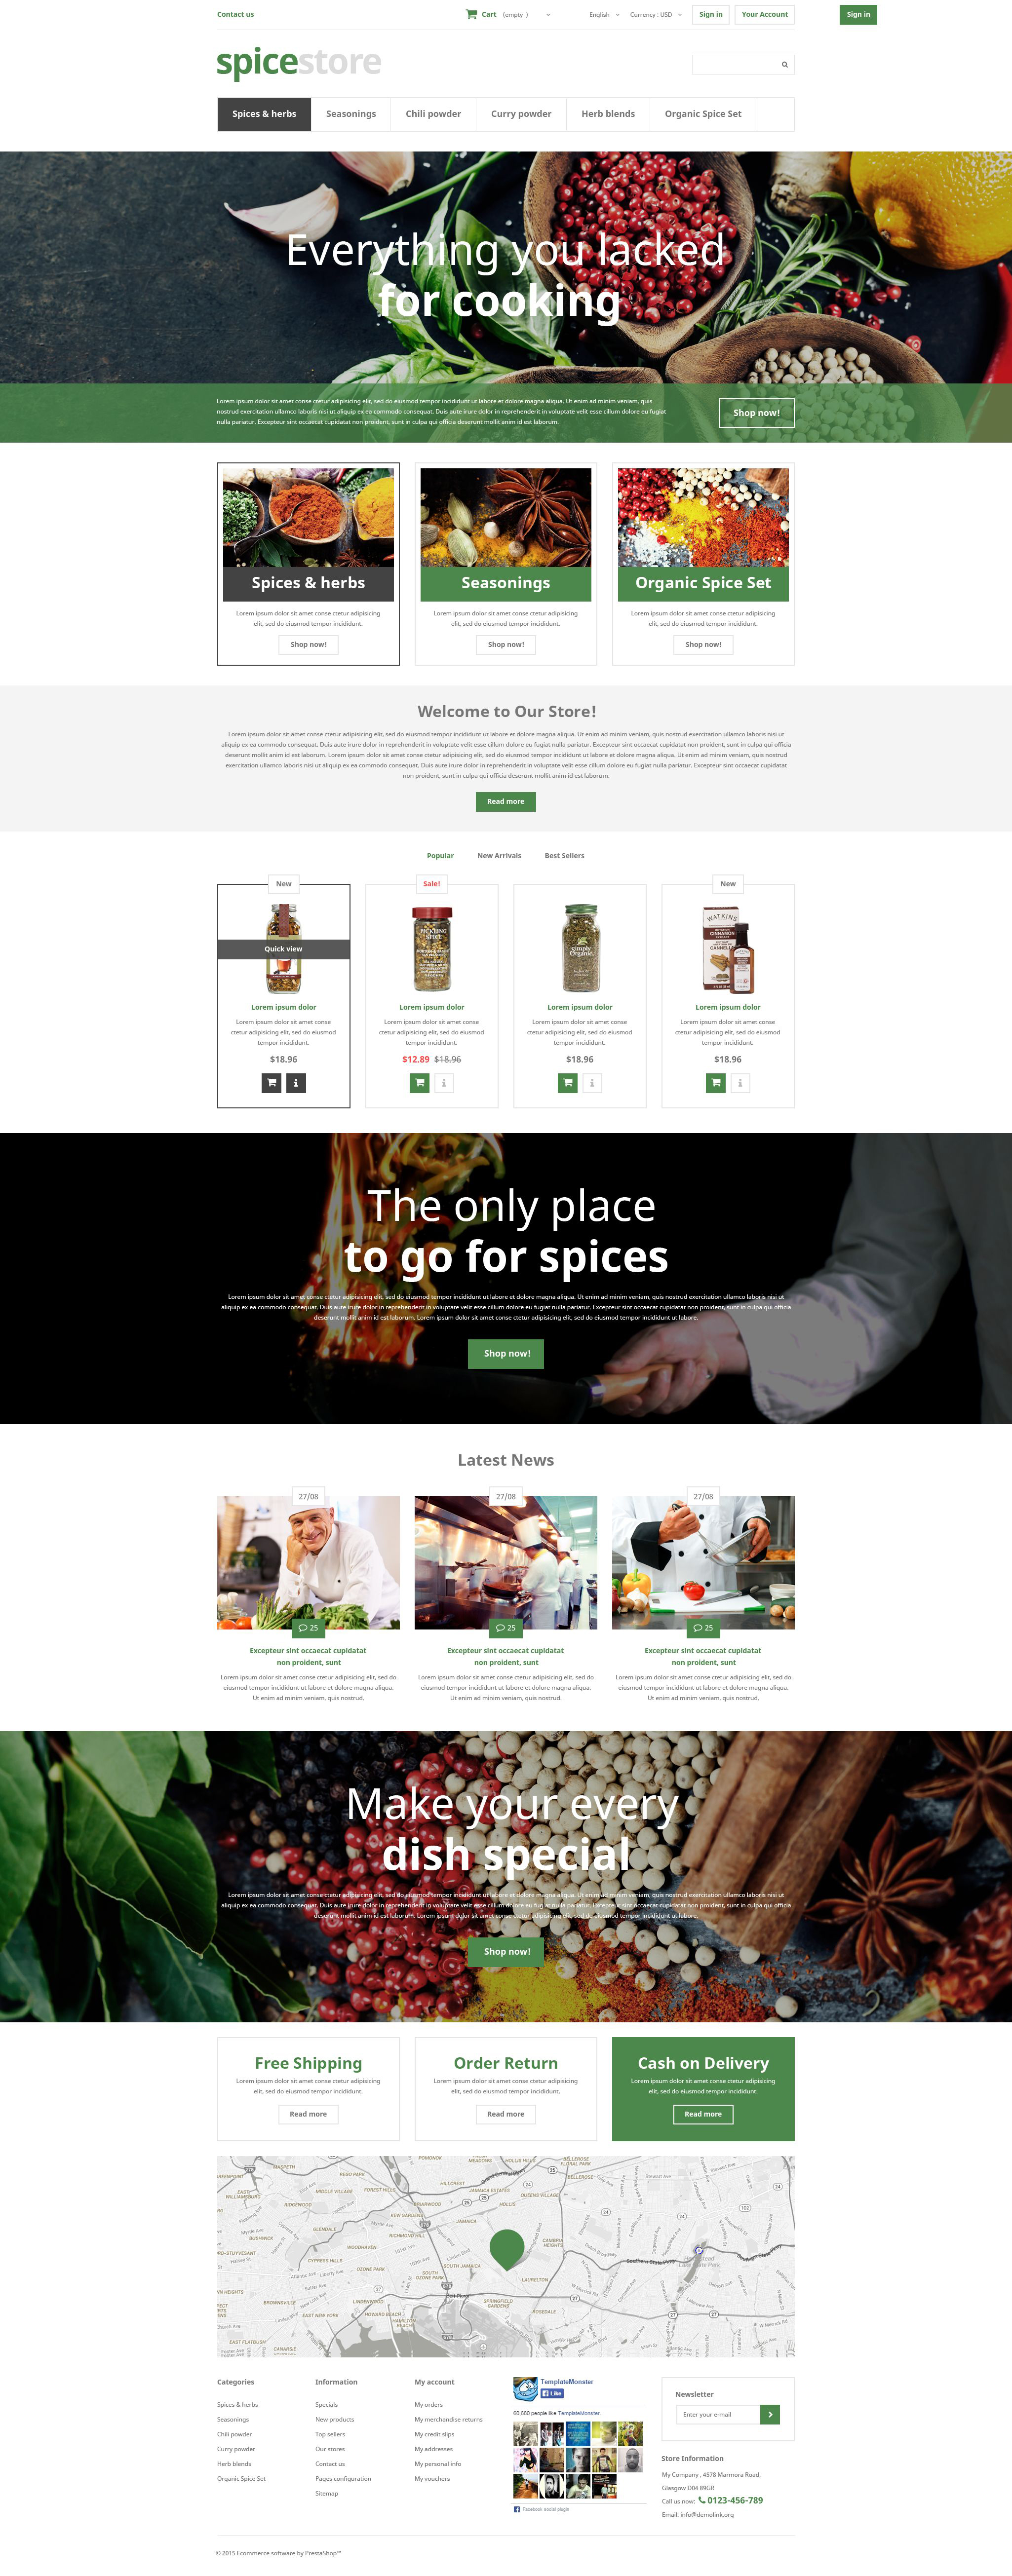 The Spices Spice Store PrestaShop Design 52962, one of the best PrestaShop themes of its kind (food & drink, most popular), also known as spices spice store PrestaShop template, spicy PrestaShop template, flavour shop PrestaShop template, cook PrestaShop template, pepper PrestaShop template, salt PrestaShop template, powder PrestaShop template, blend PrestaShop template, cinnamon PrestaShop template, dried PrestaShop template, herbs and related with spices spice store, spicy, flavour shop, cook, pepper, salt, powder, blend, cinnamon, dried, herbs, etc.